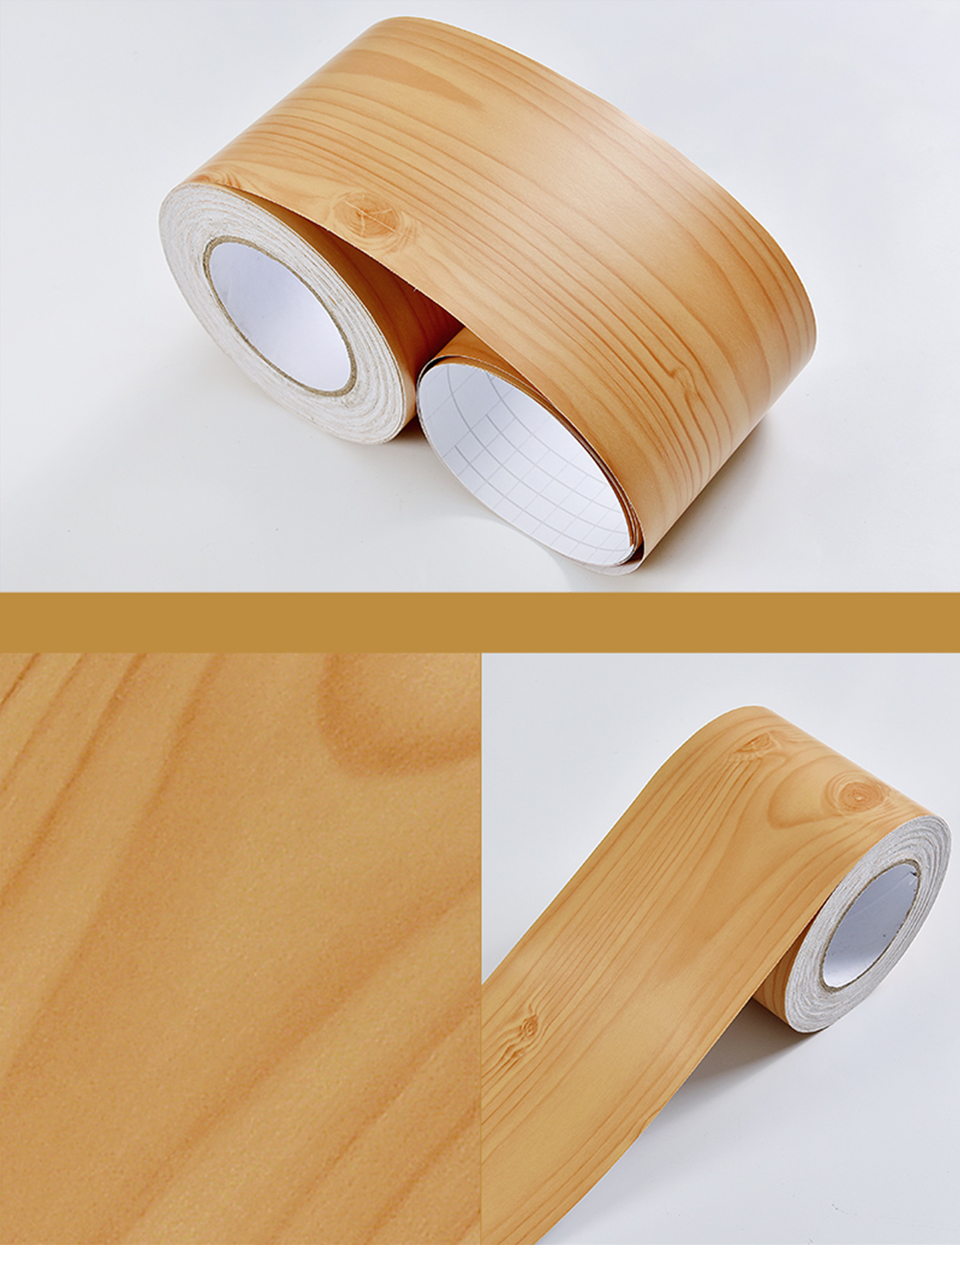 Wood Self Adhesive Window Decal Living Room Floor Border Skirting Contact Paper Waterproof Waist Line Wallpaper Home Improvement H8d9c3258eb254d7f8be6a8e40c394ee2k